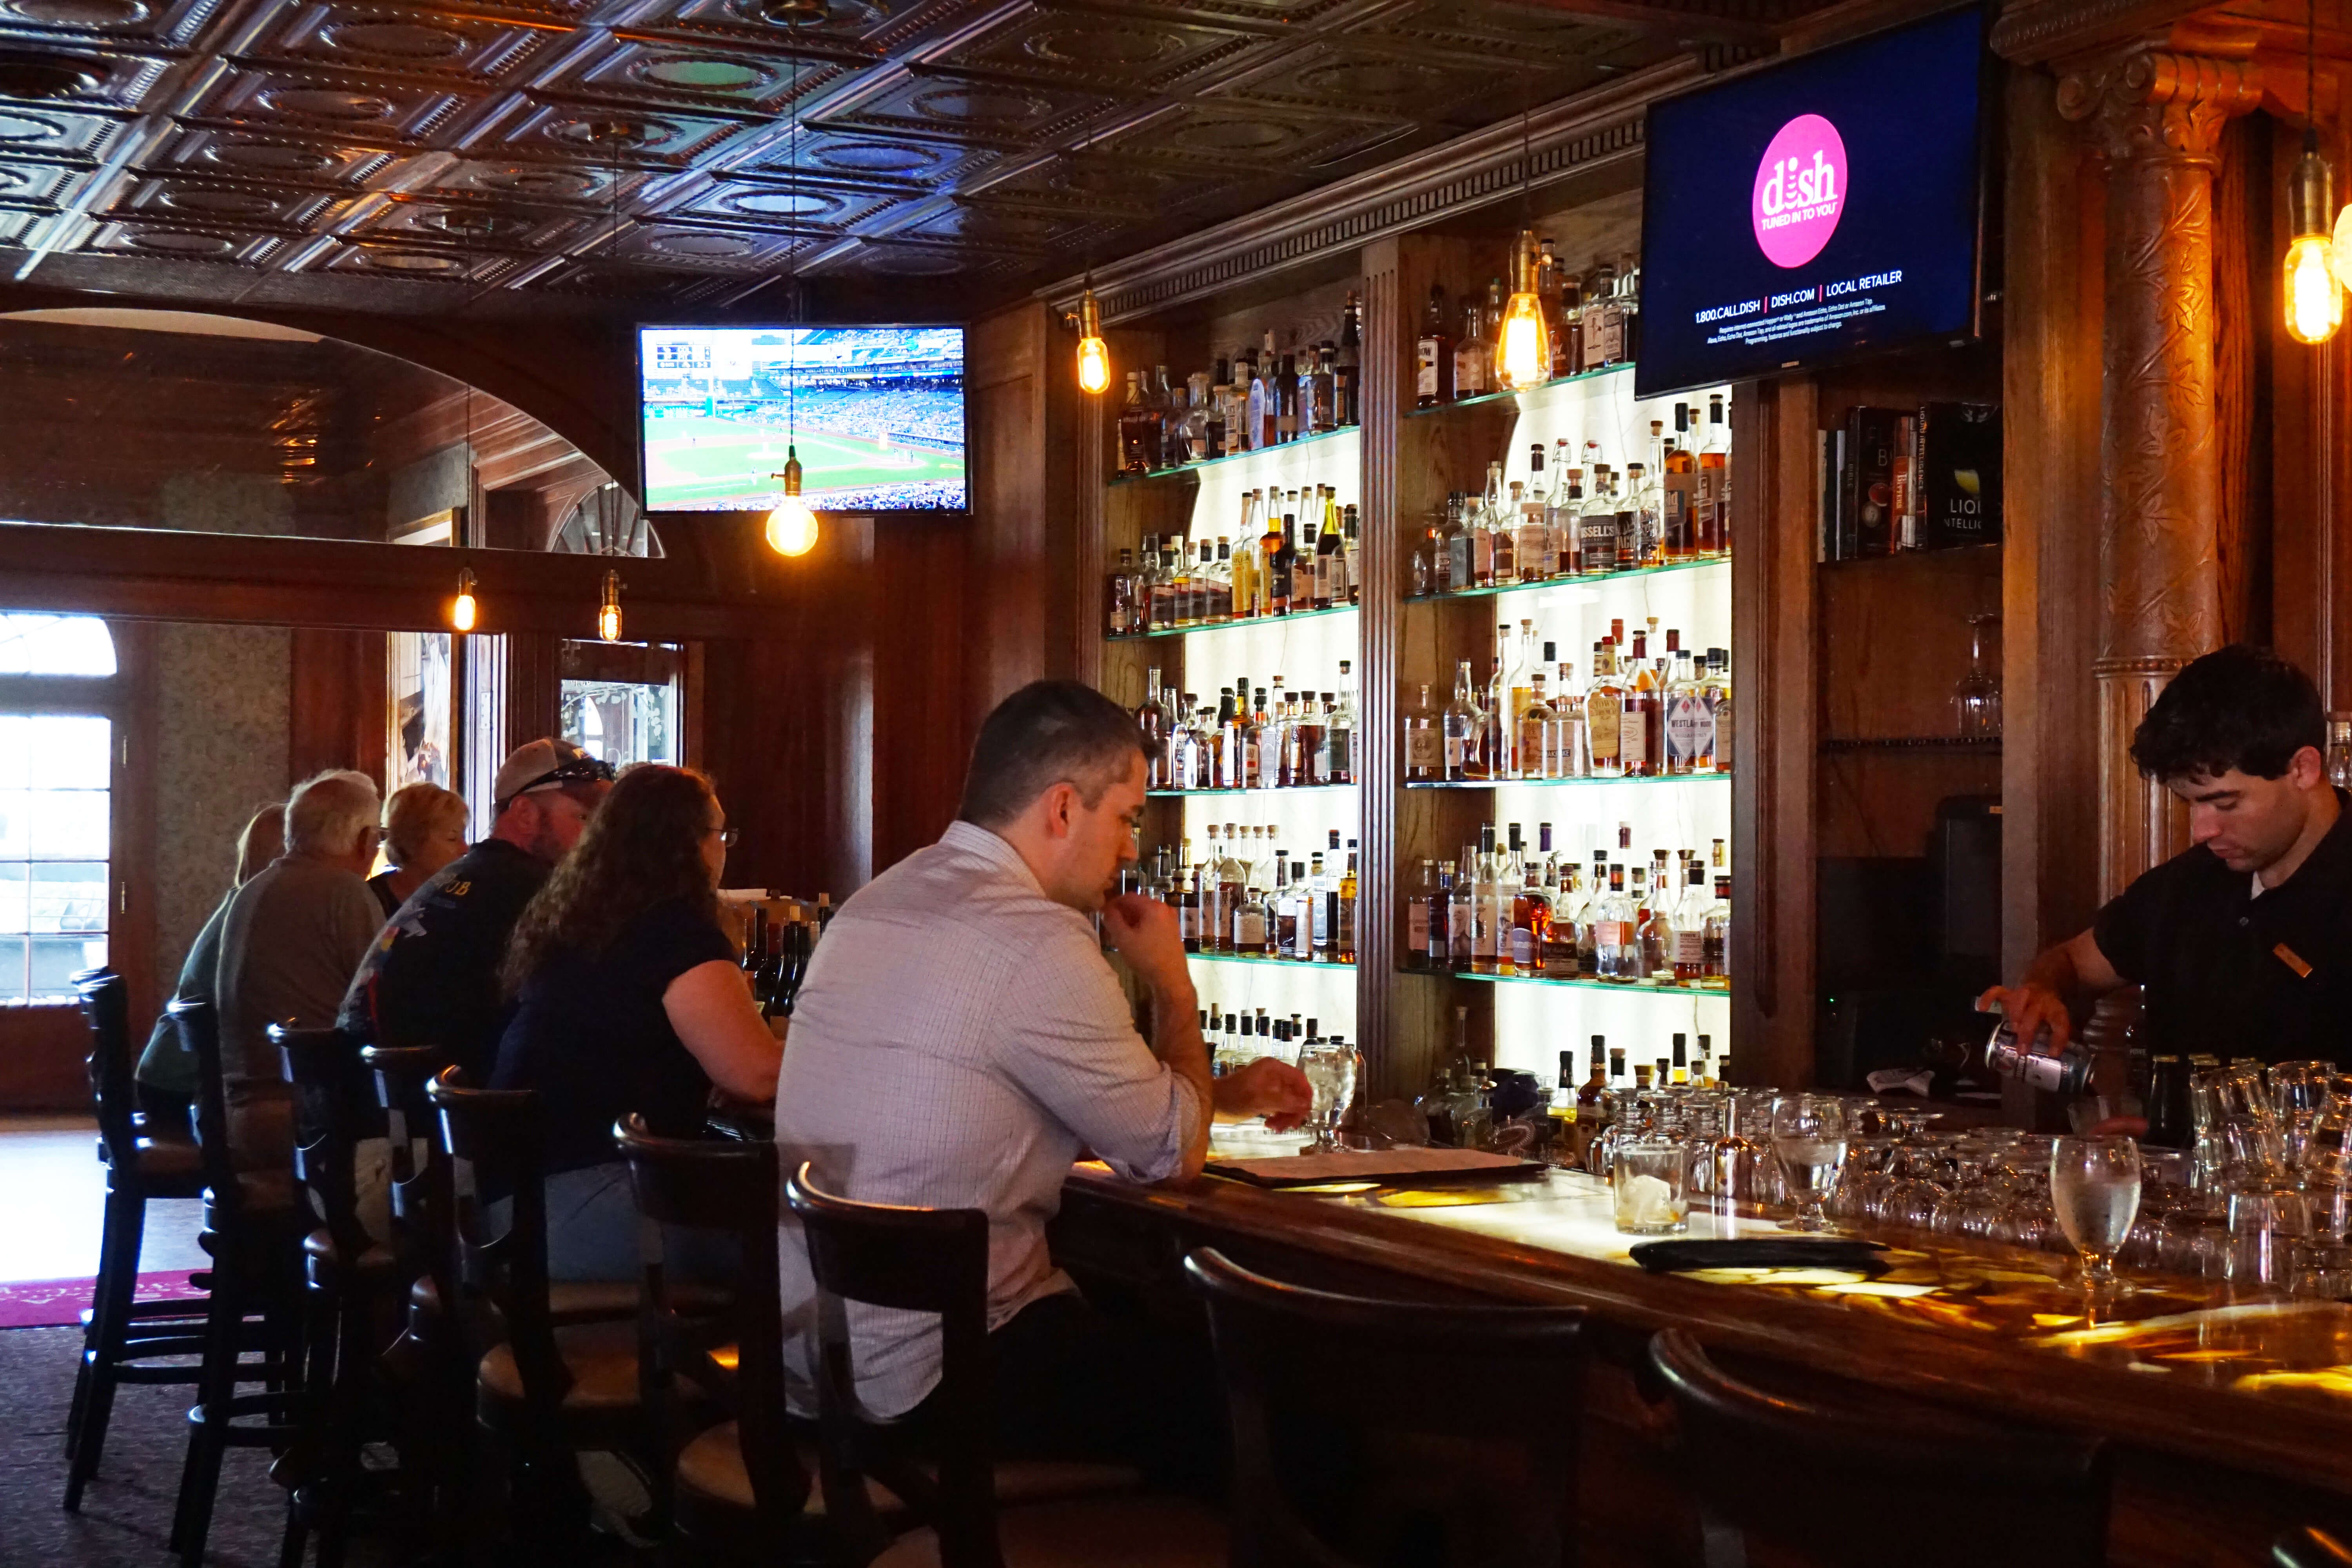 The Stanley Hotel Bar